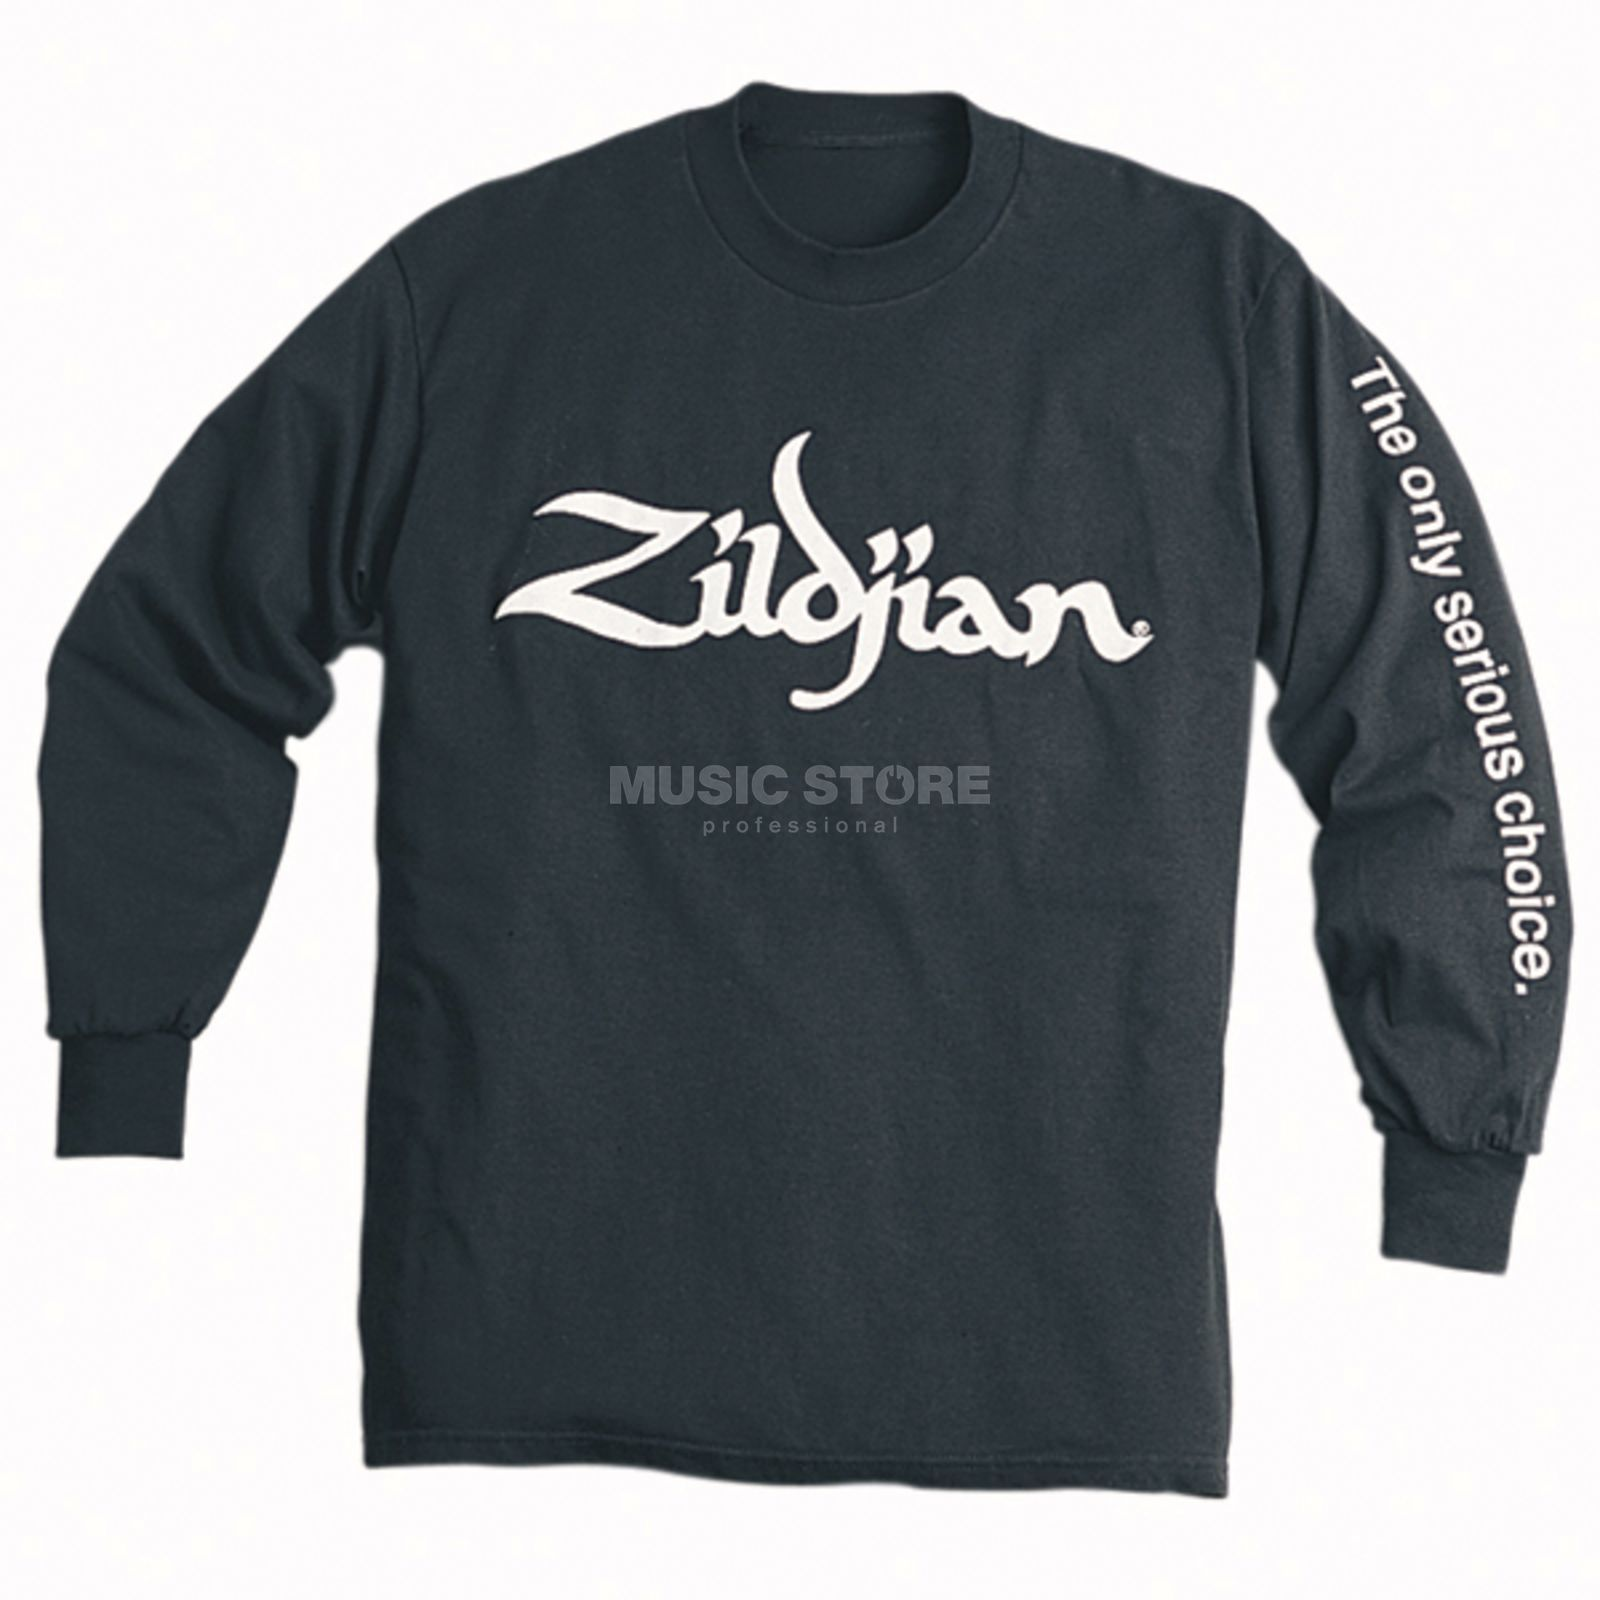 Zildjian Long Sleeve Shirt Black Large Produktbild